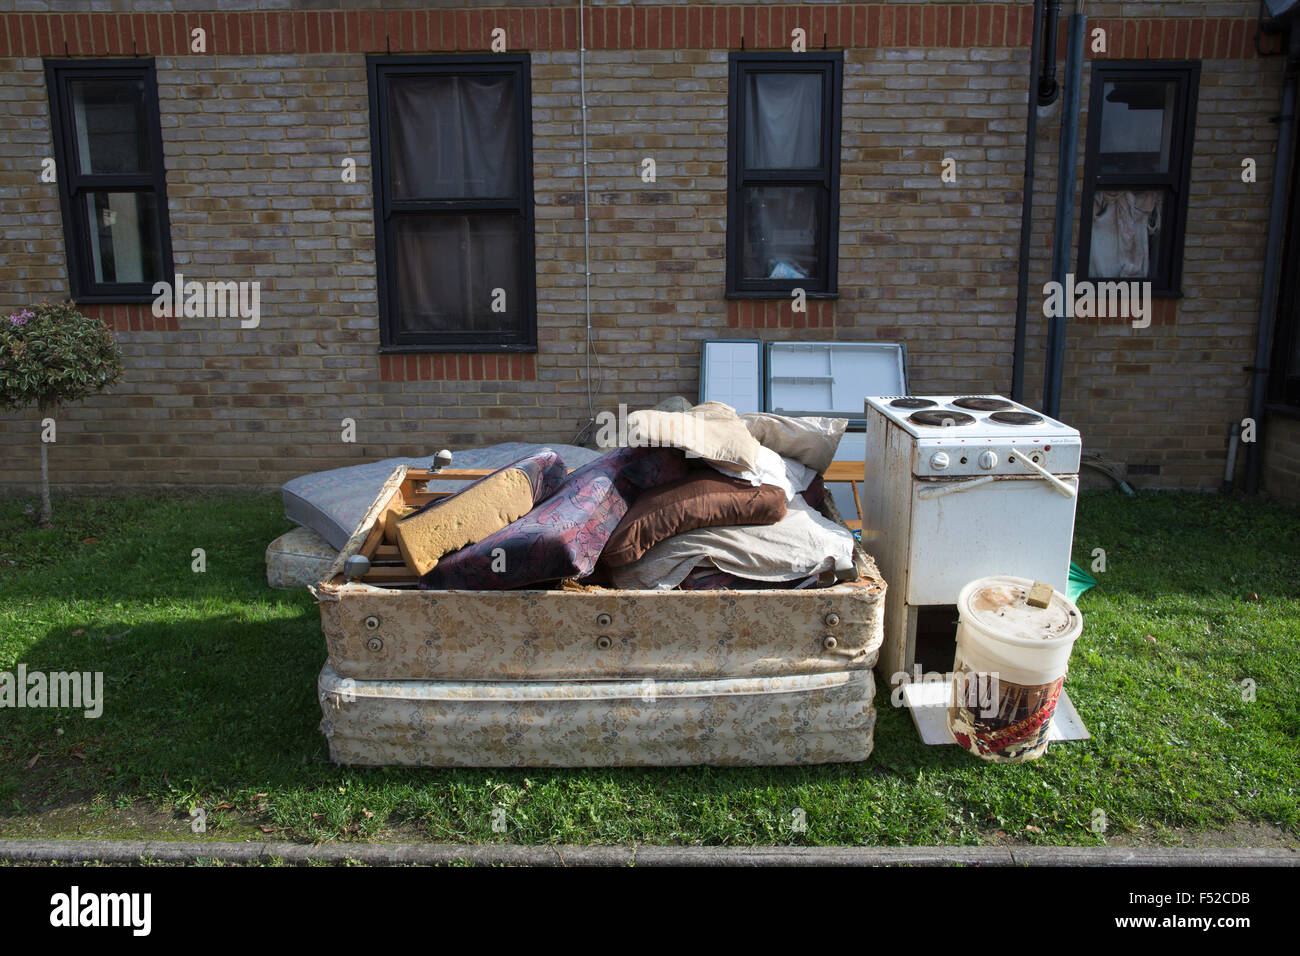 Fly tipping on a residential street, London, UK - Stock Image